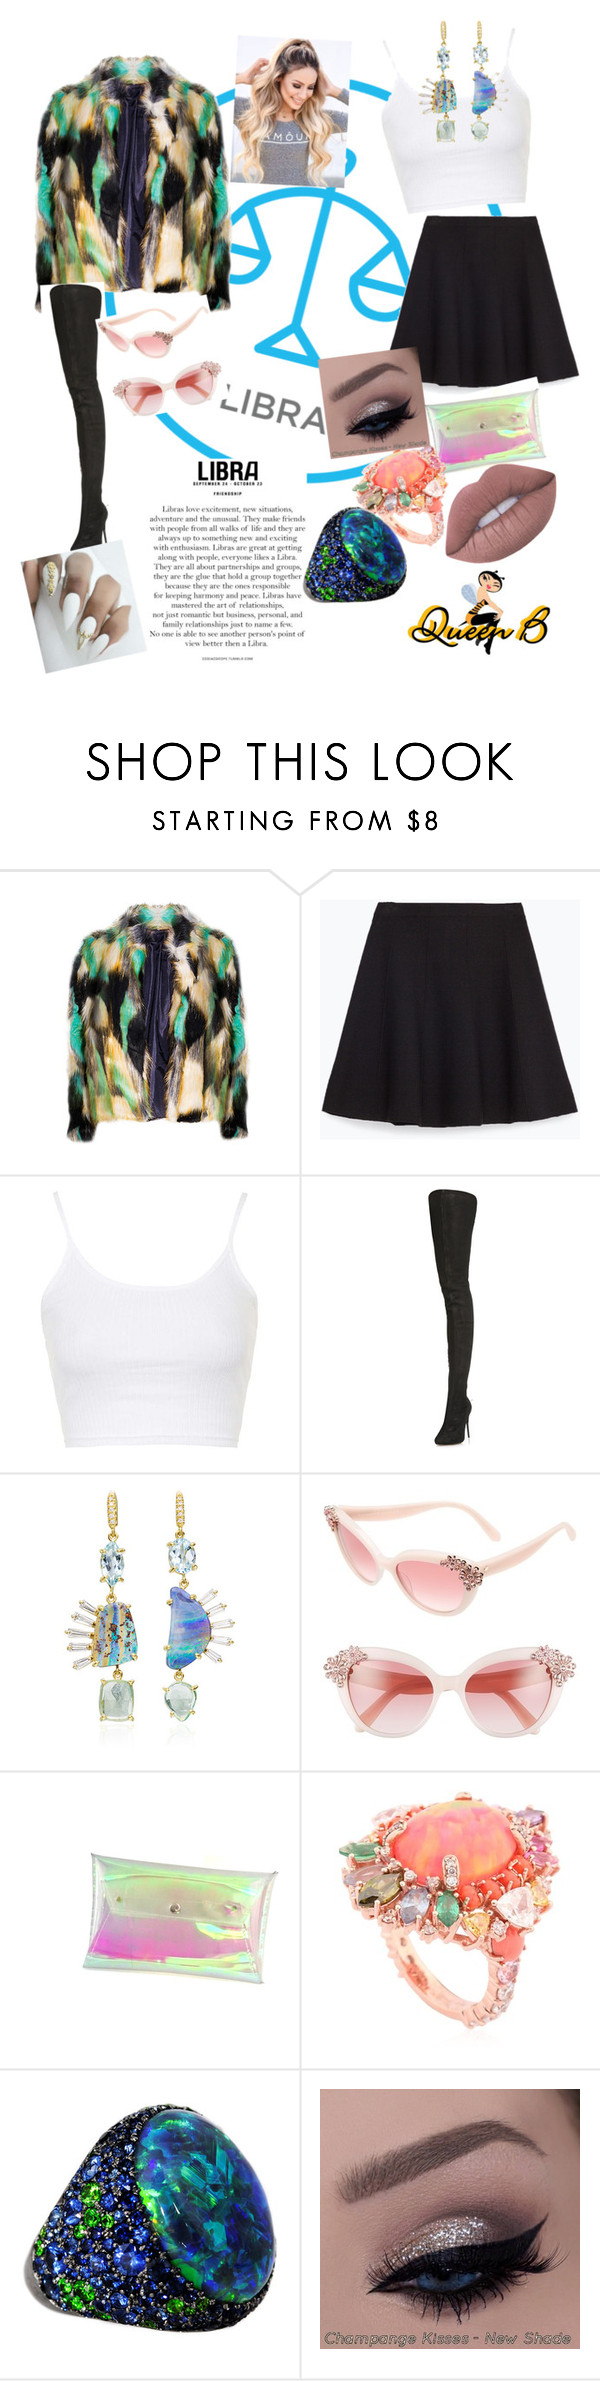 """""""Libra Love....That's Me♎"""" by glam-fab-bee-heelz ❤ liked on Polyvore featuring Zara, Topshop, Maison Margiela, Lauren K, Kate Spade, Anabela Chan and Lime Crime"""